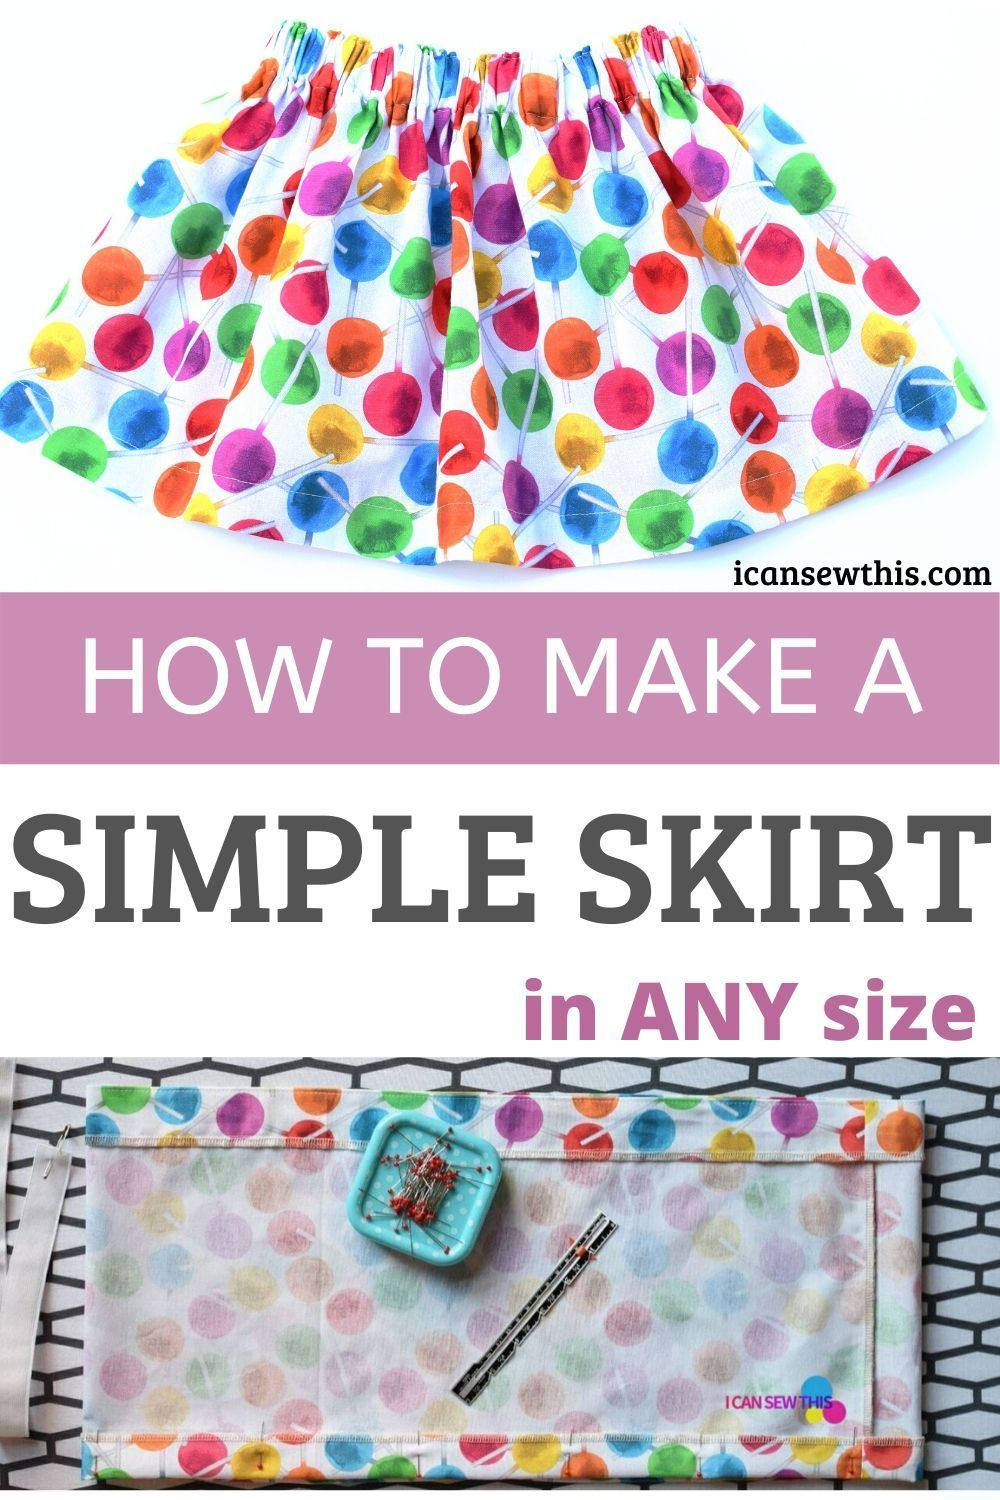 Couture pour les débutants: comment faire une jupe simple   – Sew It Cook It Craft It Link Party – Group Board